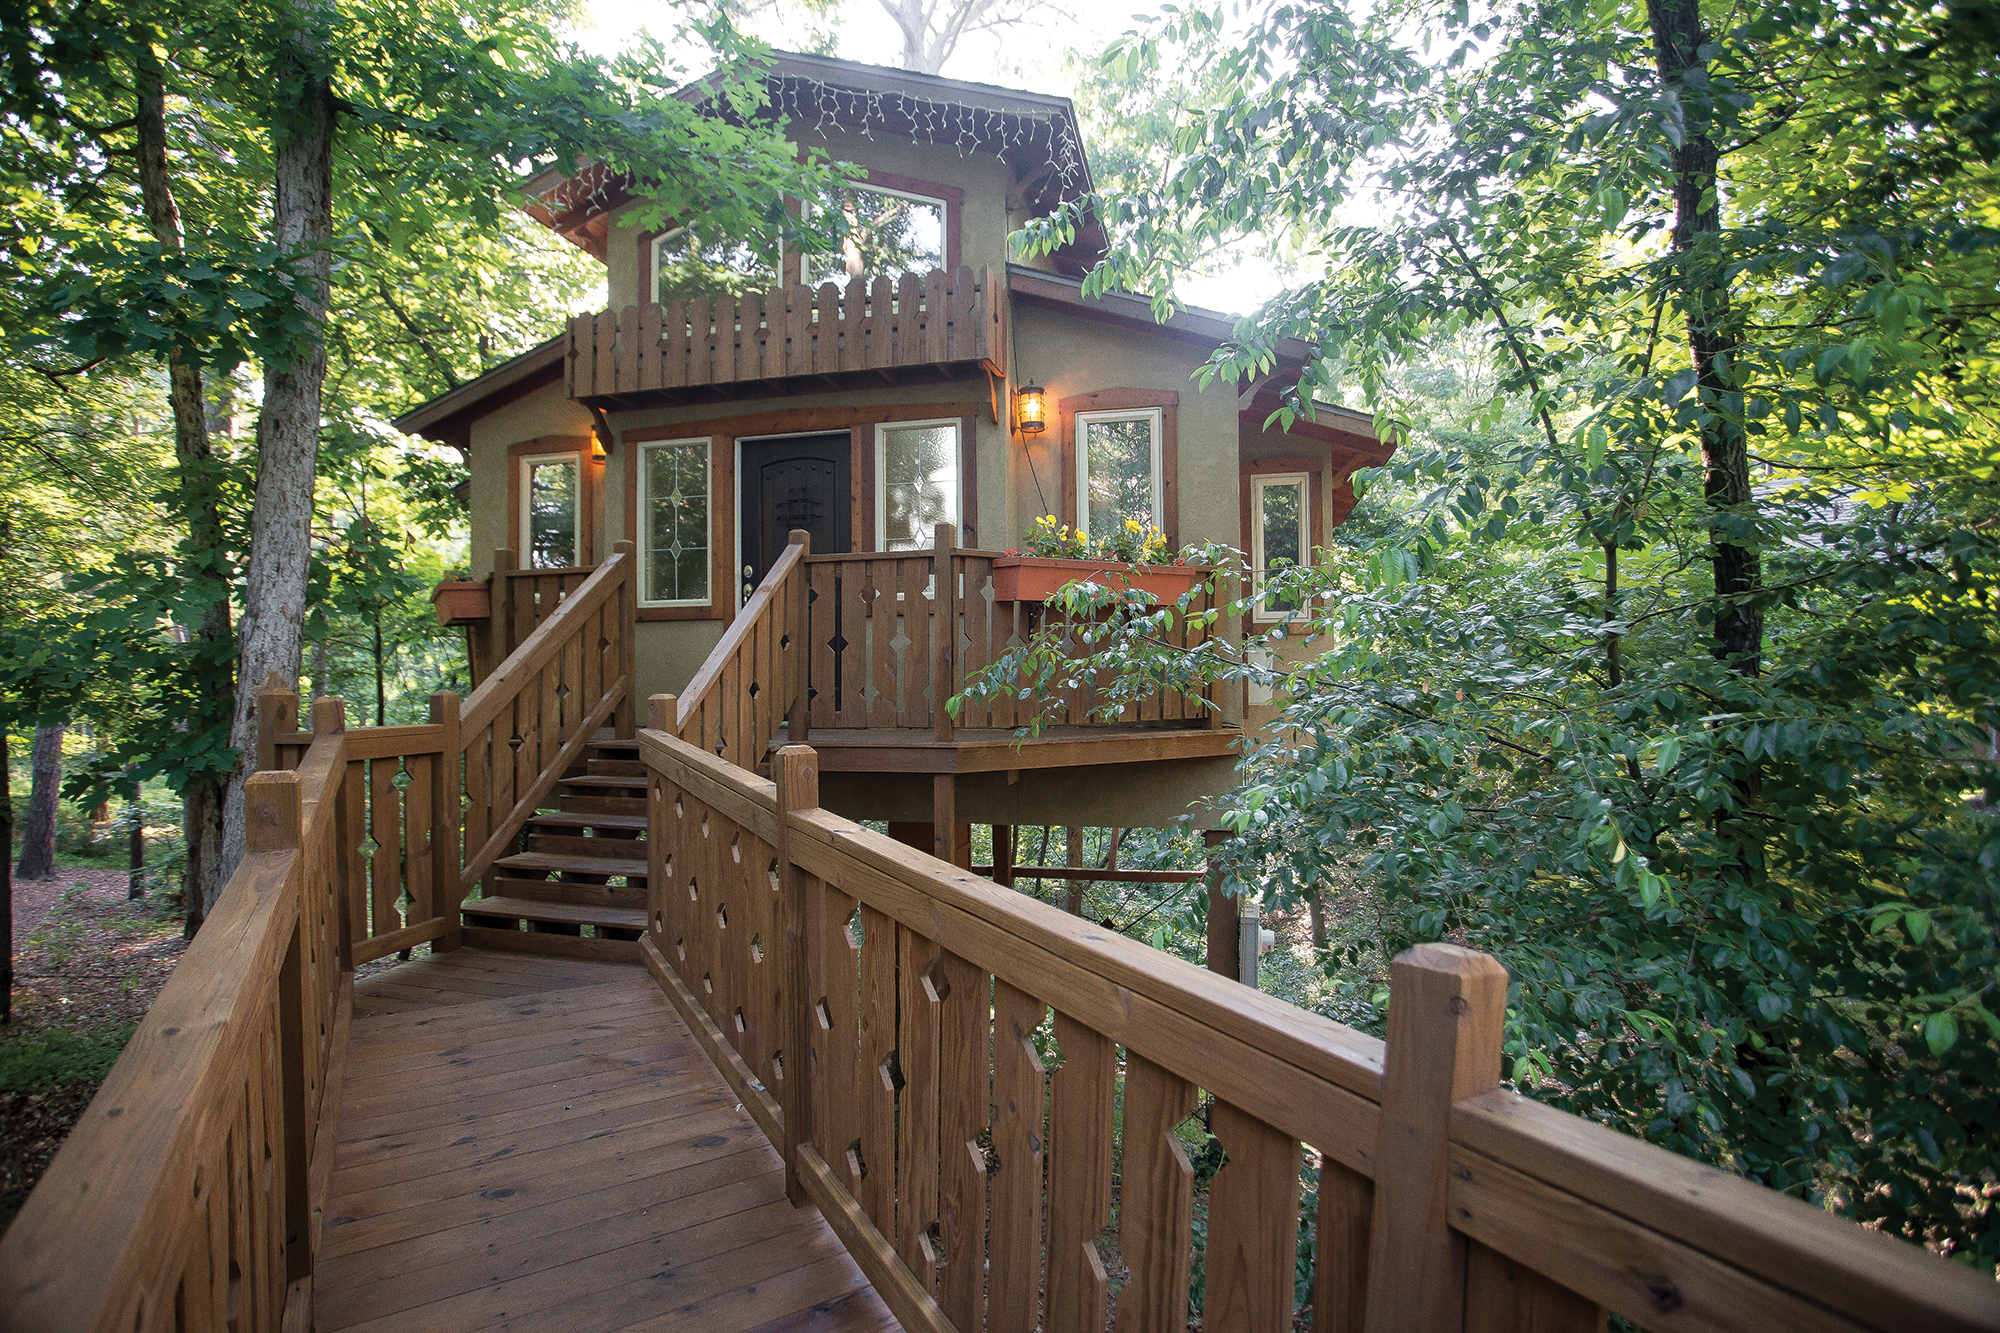 dsc county p eureka springs disc cottage resort rd sony meadow cottages stone